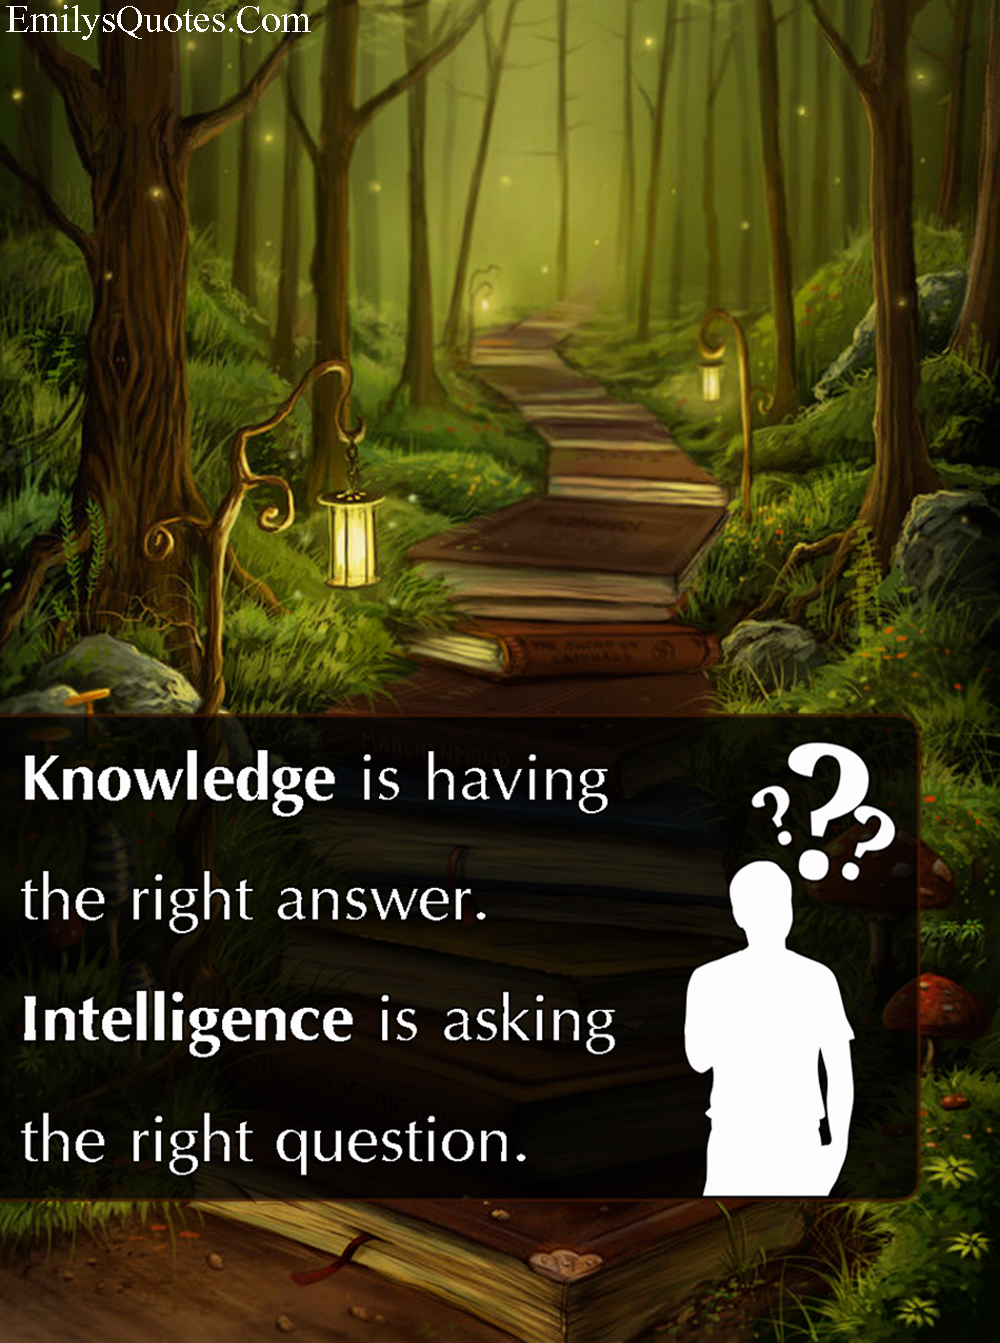 EmilysQuotes.Com - knowledge, answer, intelligence, question, unknwon, difference